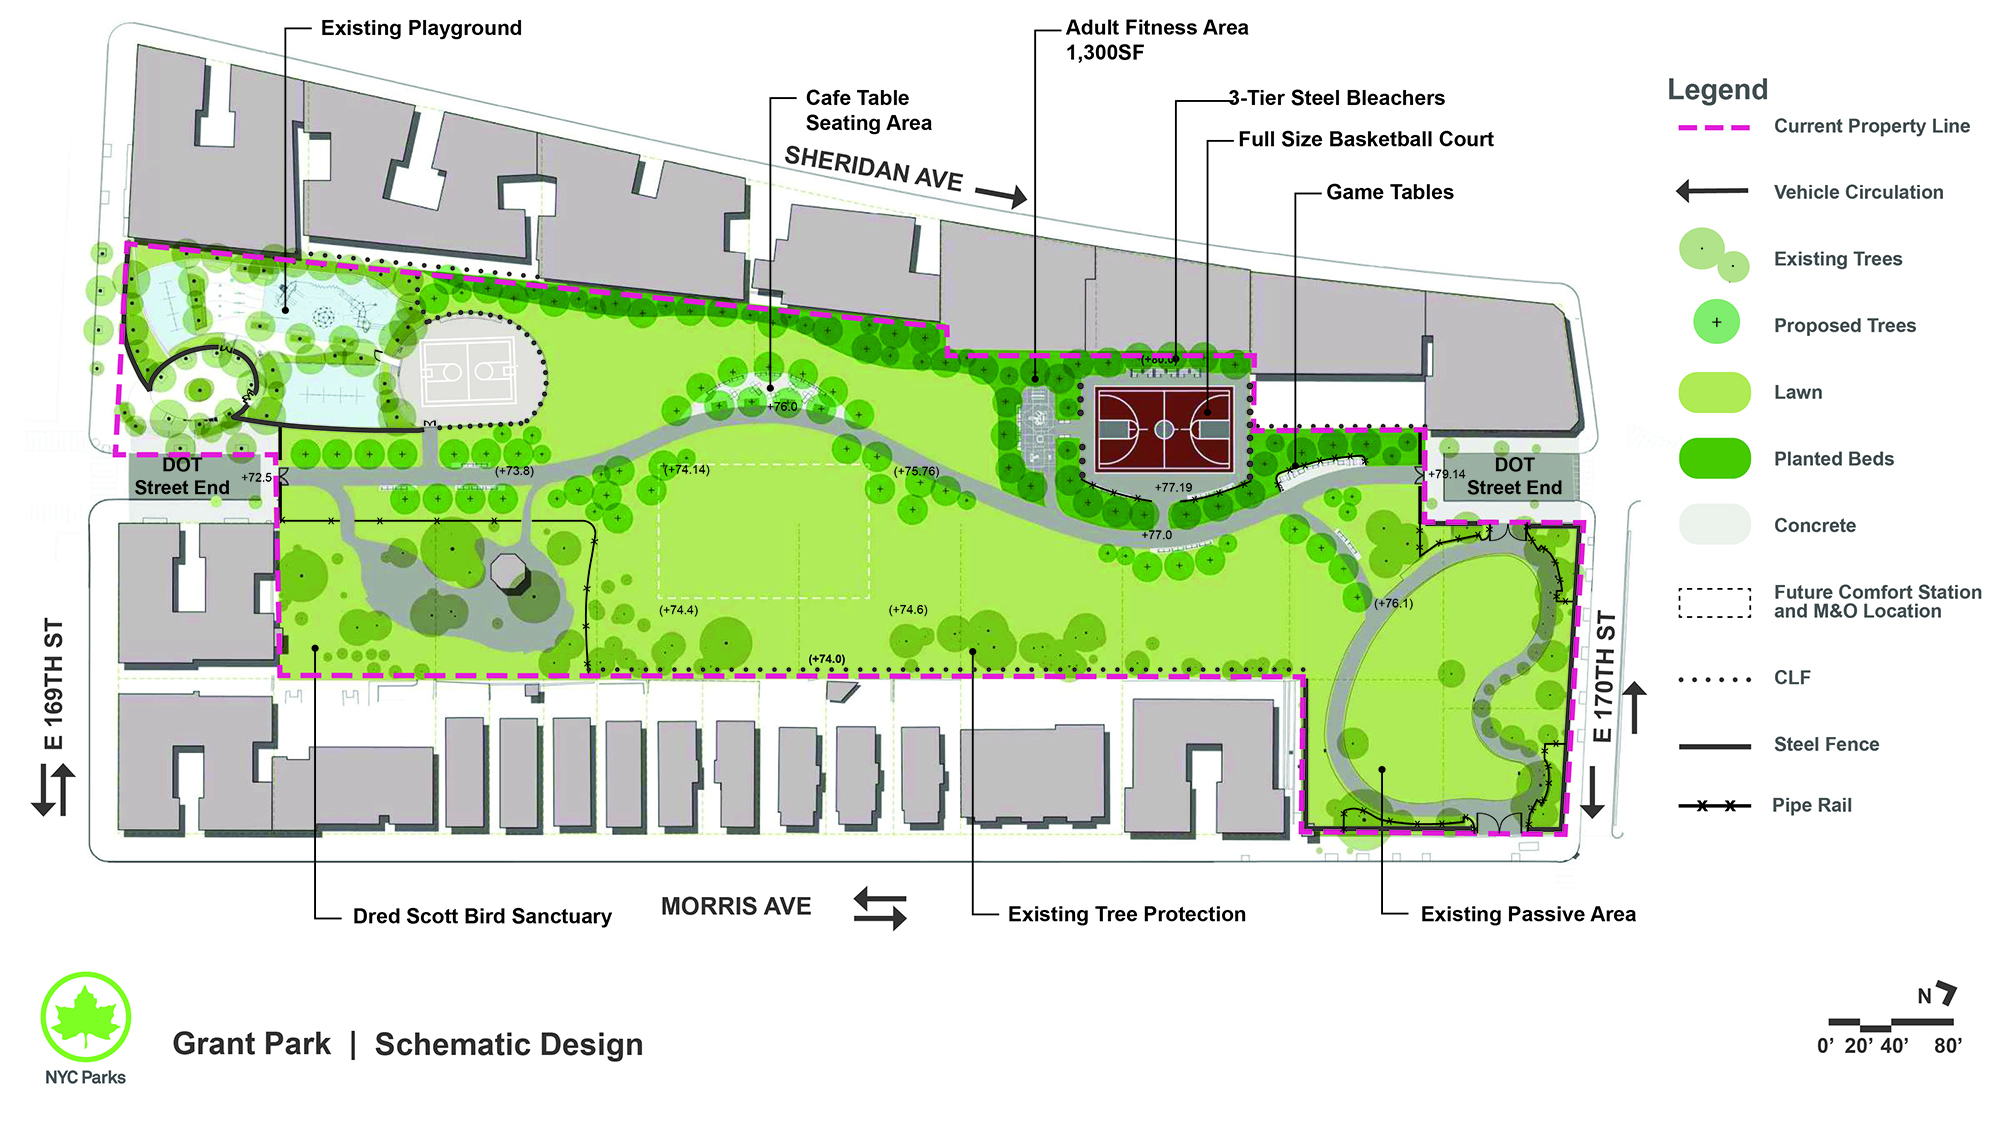 Design of Grant Park Construction